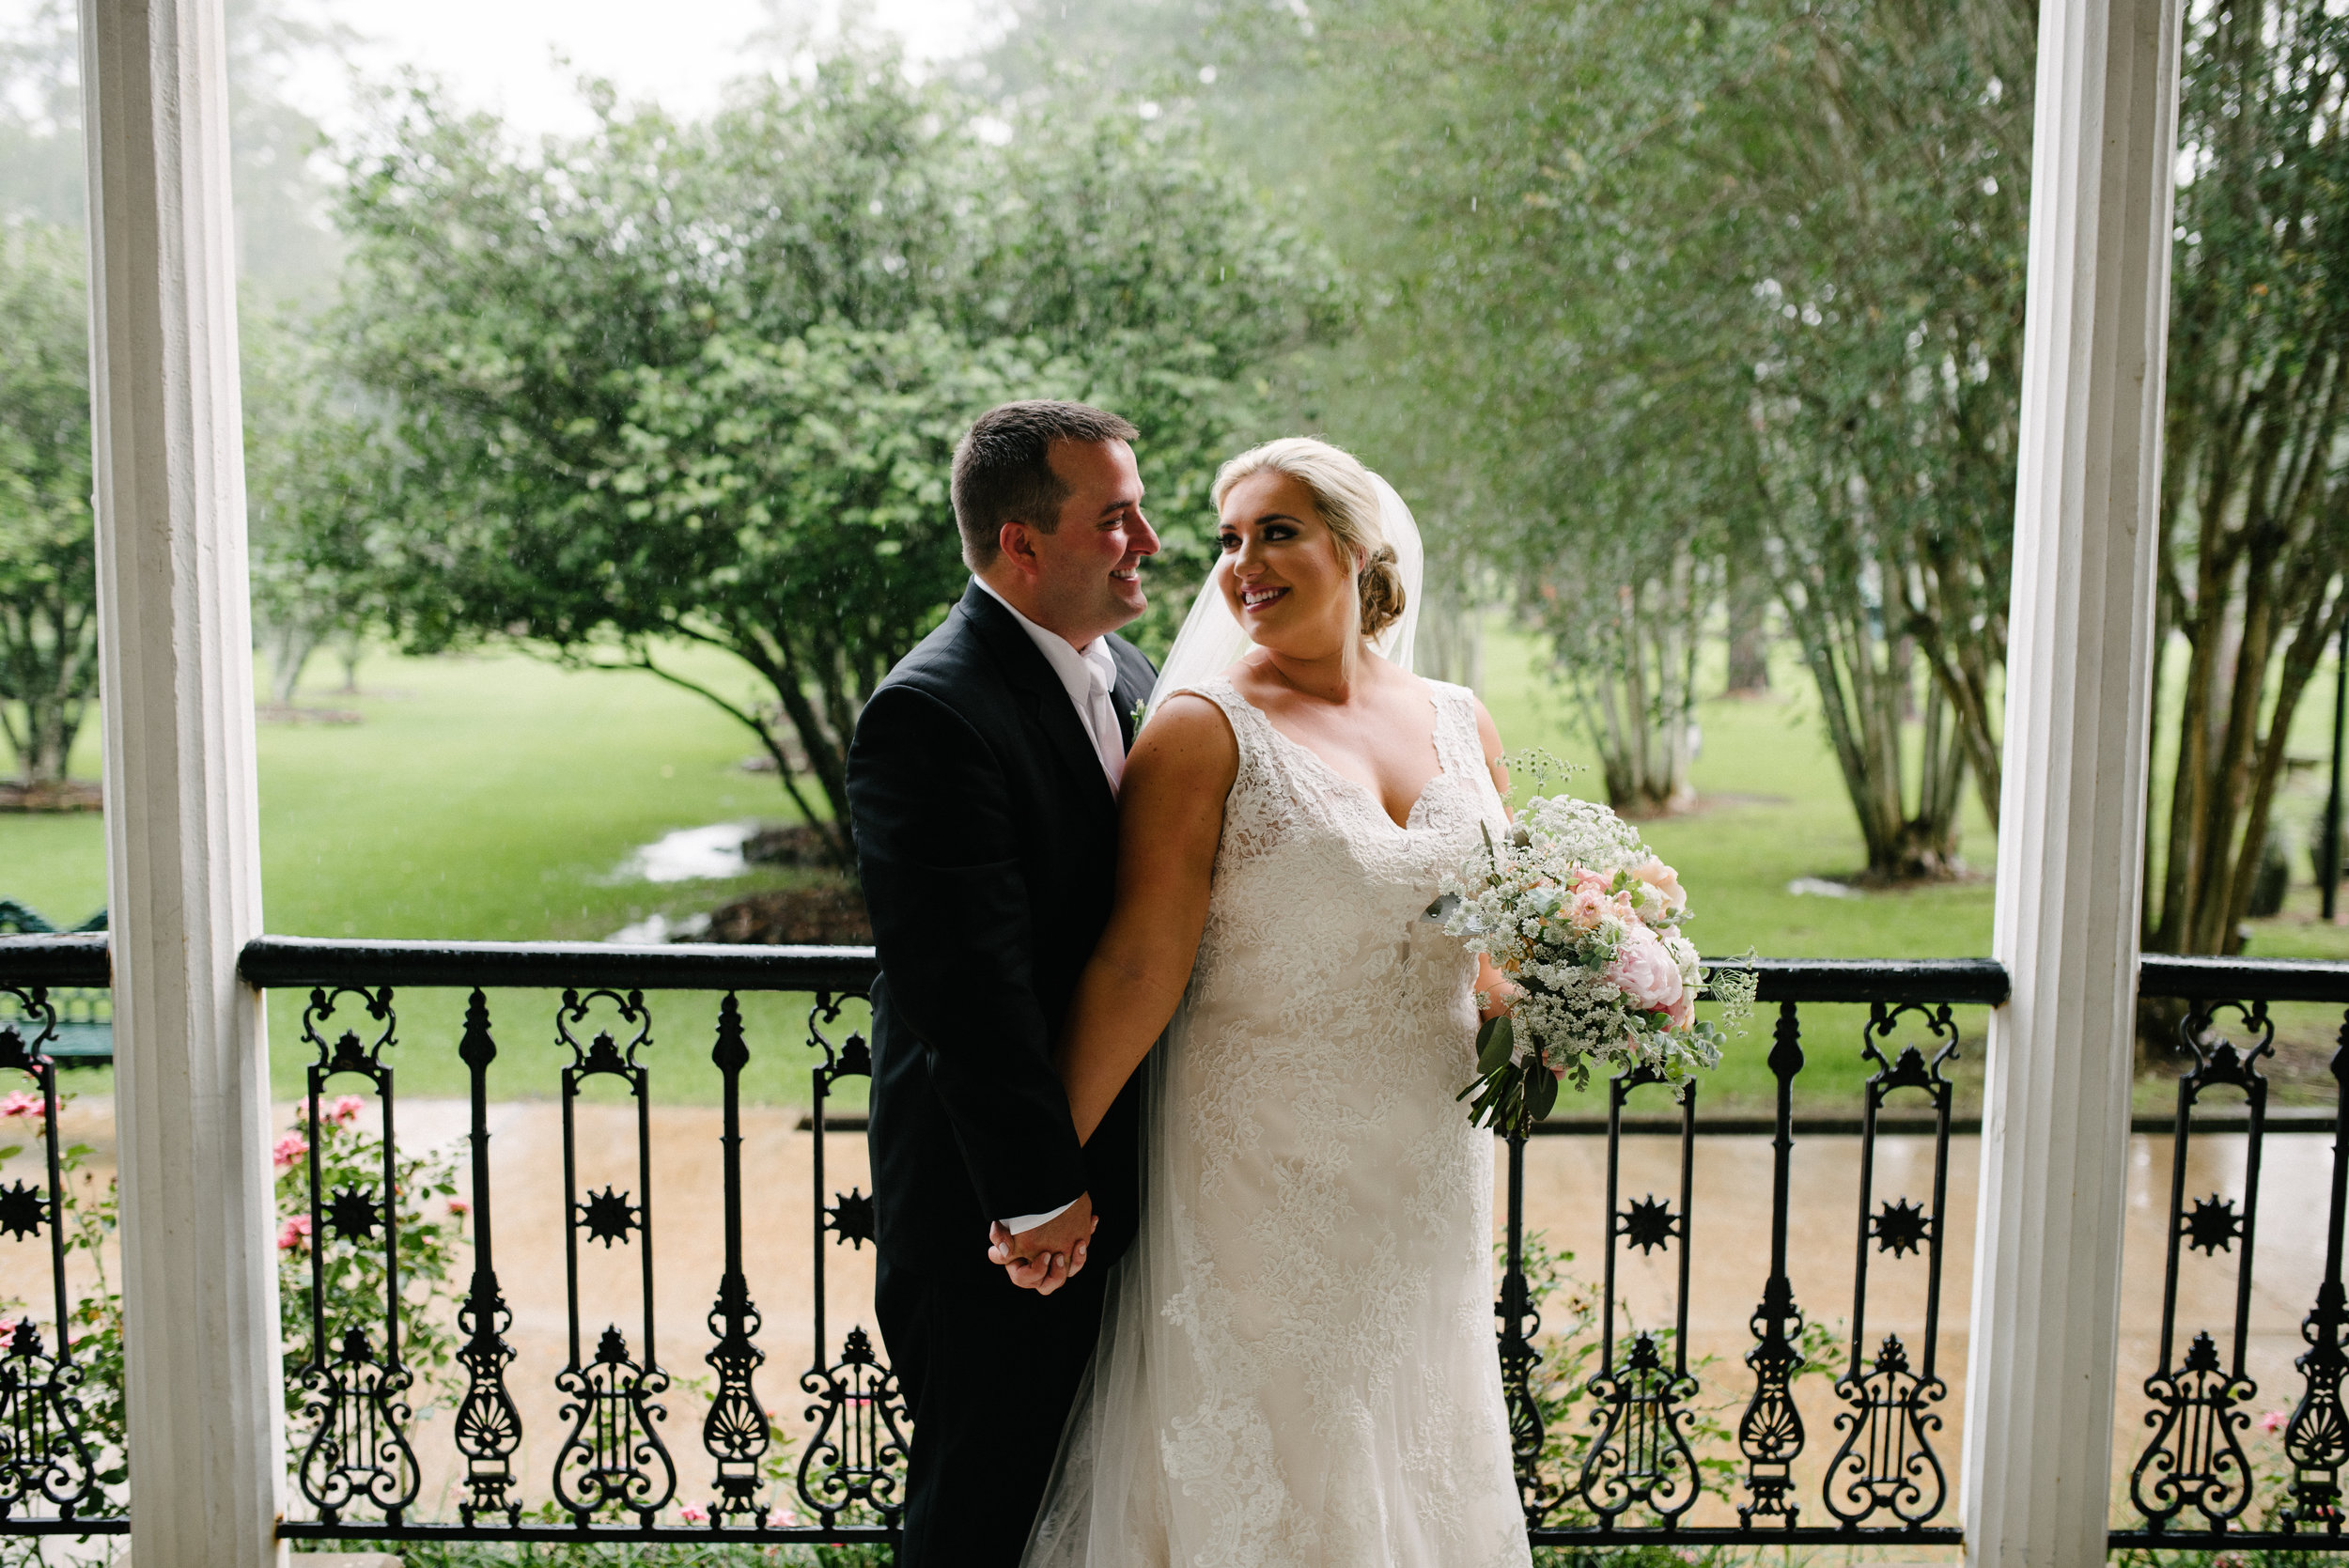 Southern Fete, Southern Wedding, Root Floral Design, Beauty by Victoria, Joie de Vivre, Hannah Mulligan Photography